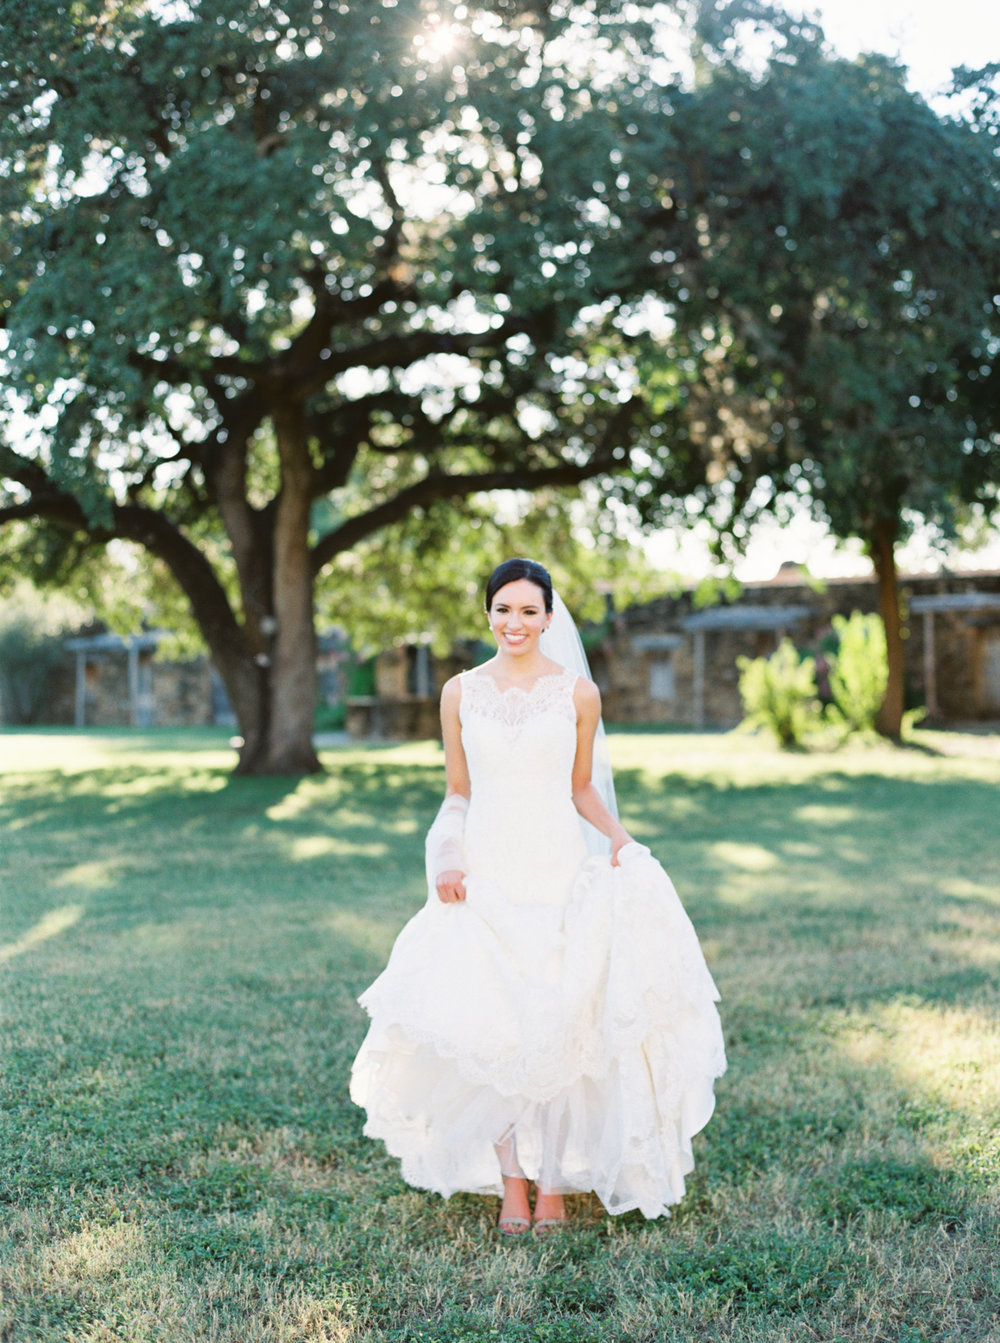 AUSTIN WEDDING PHOTOGRAPHER-1-2.jpg